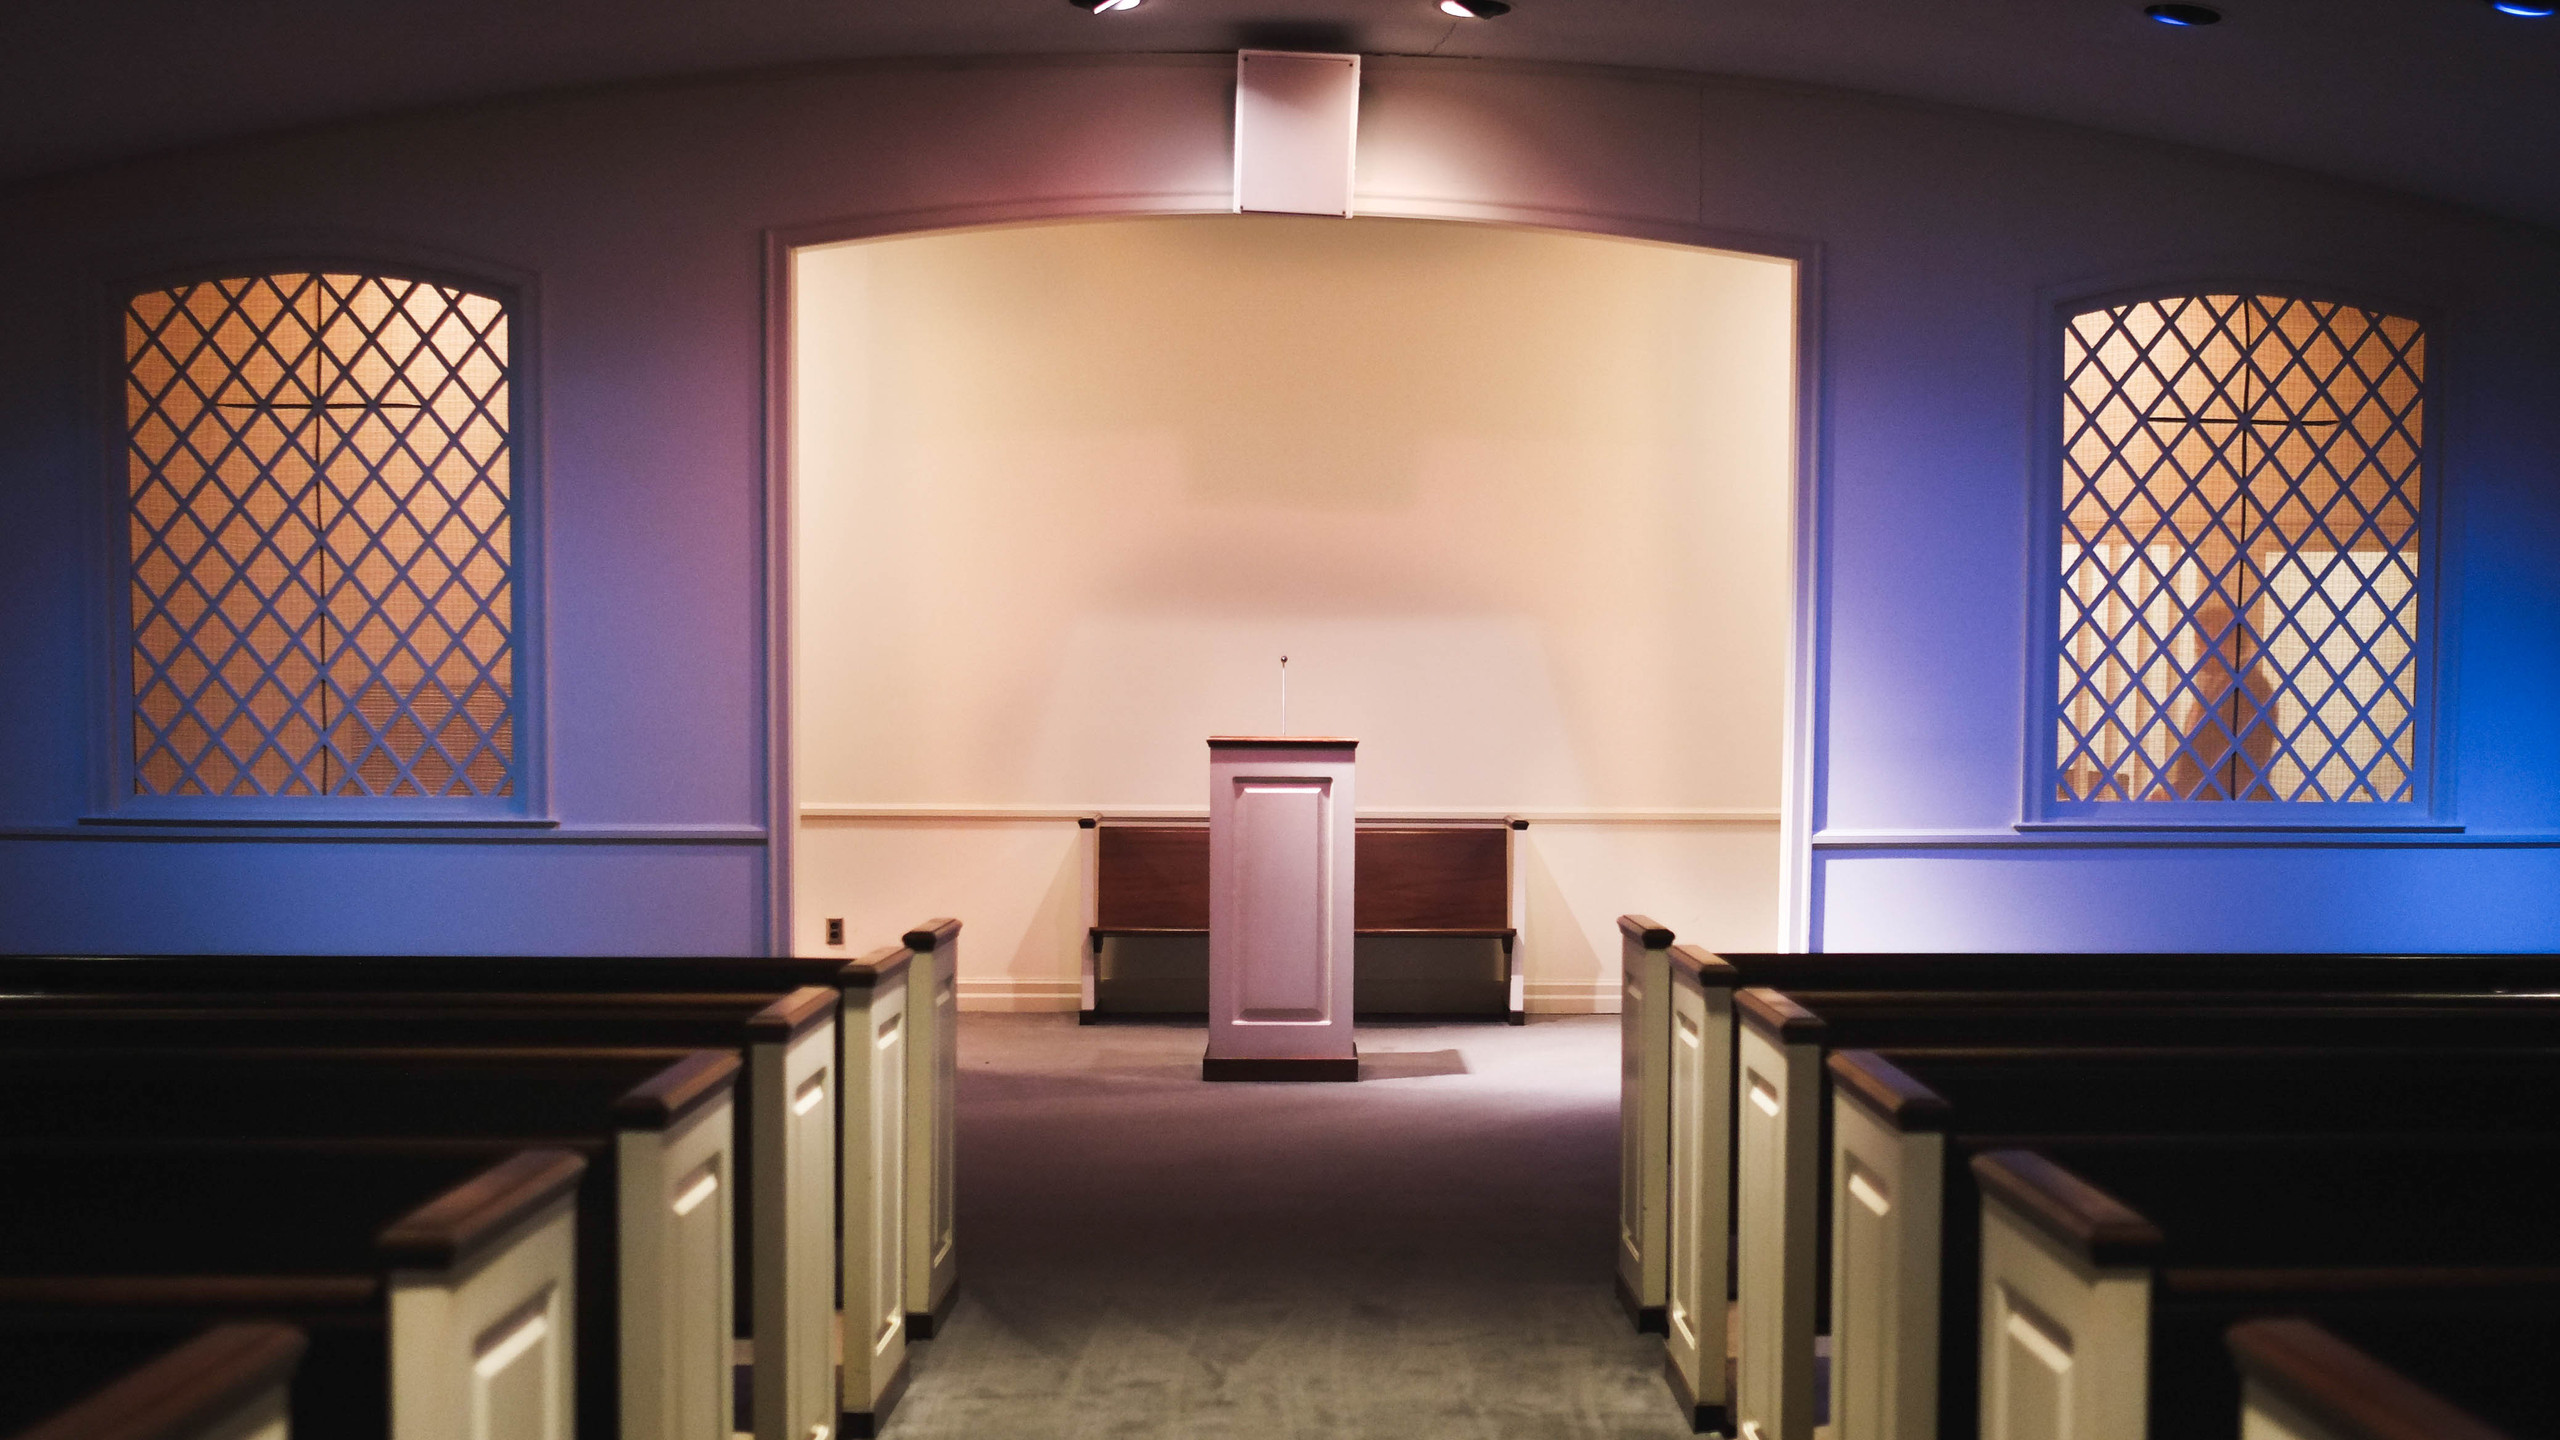 The chapel at Jordan Funeral Home is bathed in pink and blue lights. These colors are used to give the decedents a more lifelike appearance during open-casket funeral services.